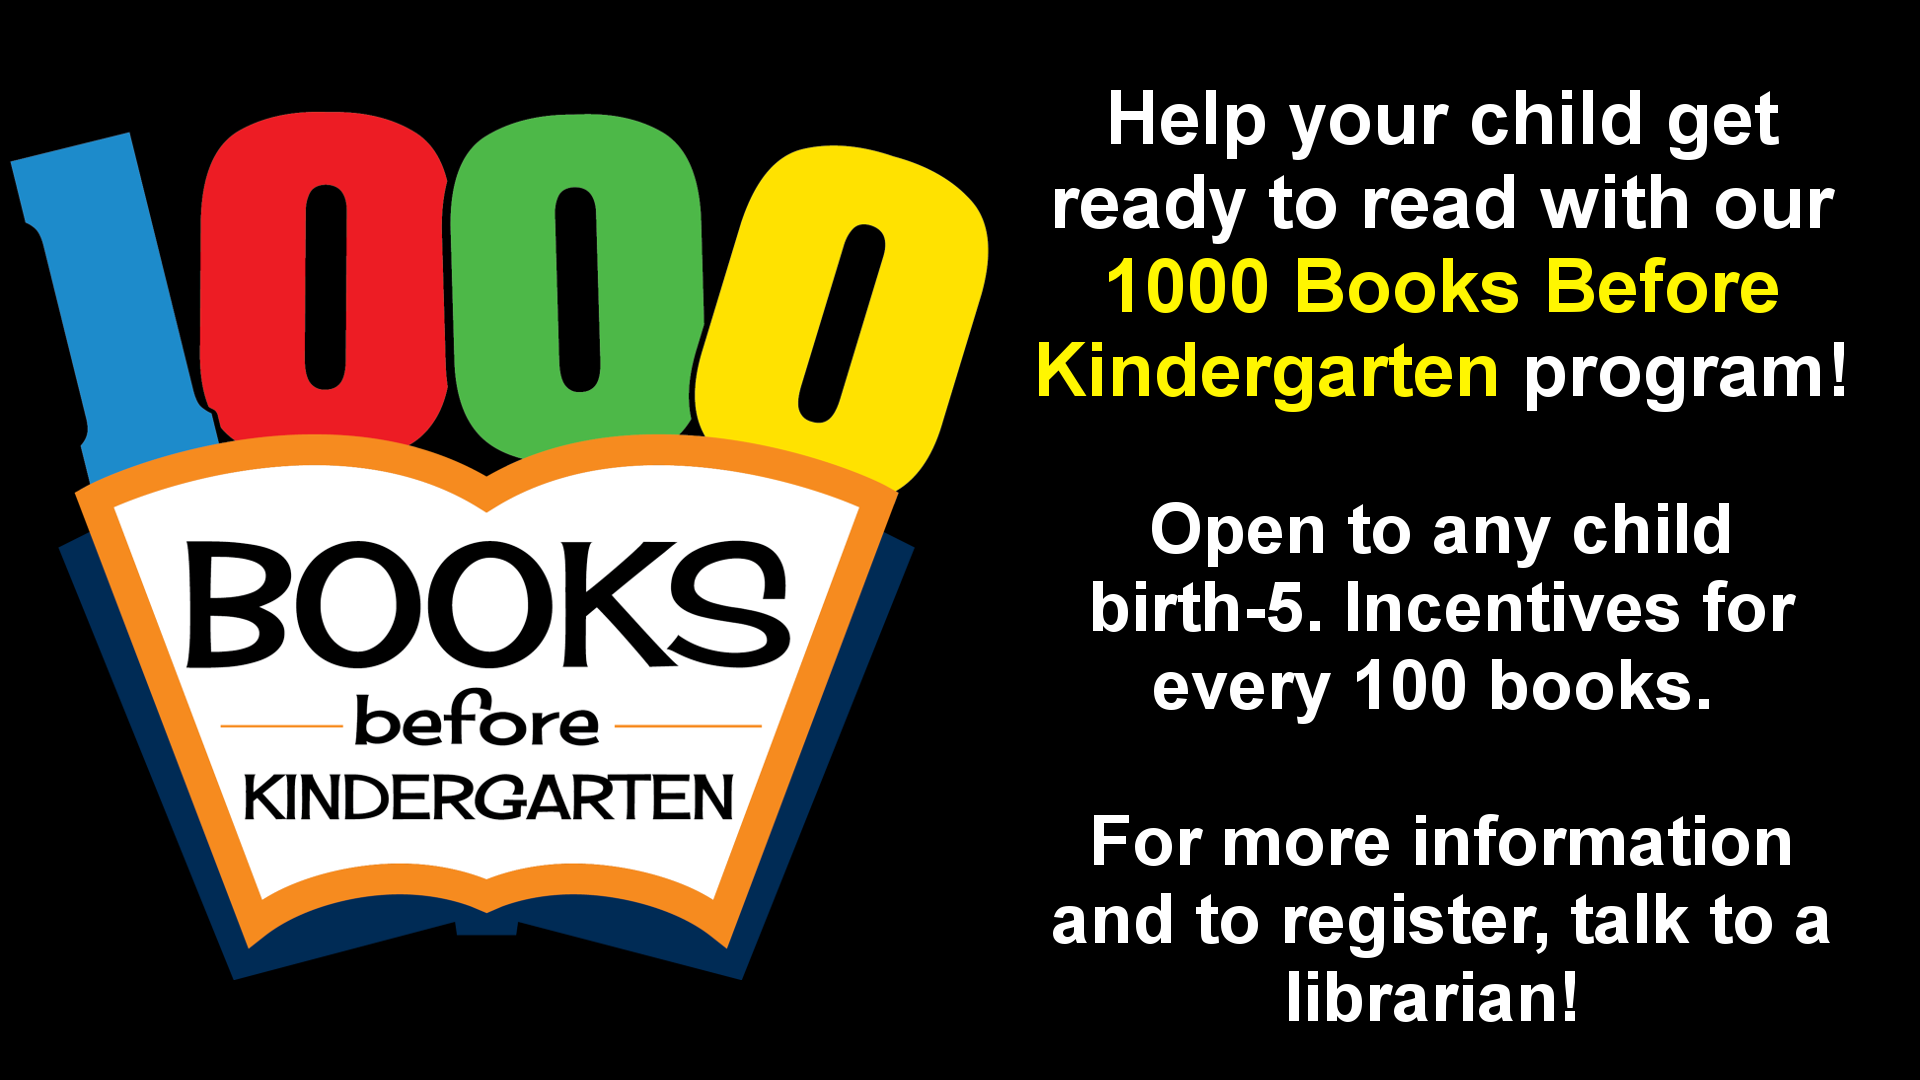 Early reading is important for establishing literary skills. Help your child gain those skills with our 1000 Books before Kindergarten program. With every 100 books read the child will get a prize from our Treasure Chest, with additional prizes at 100 and 500. Once they complete the program, they will get a book, a stuffed animal, a graduation certificate, and recognition on our social media pages and the Swift County Monitor newspaper. Talk to a library staff member for more details and to